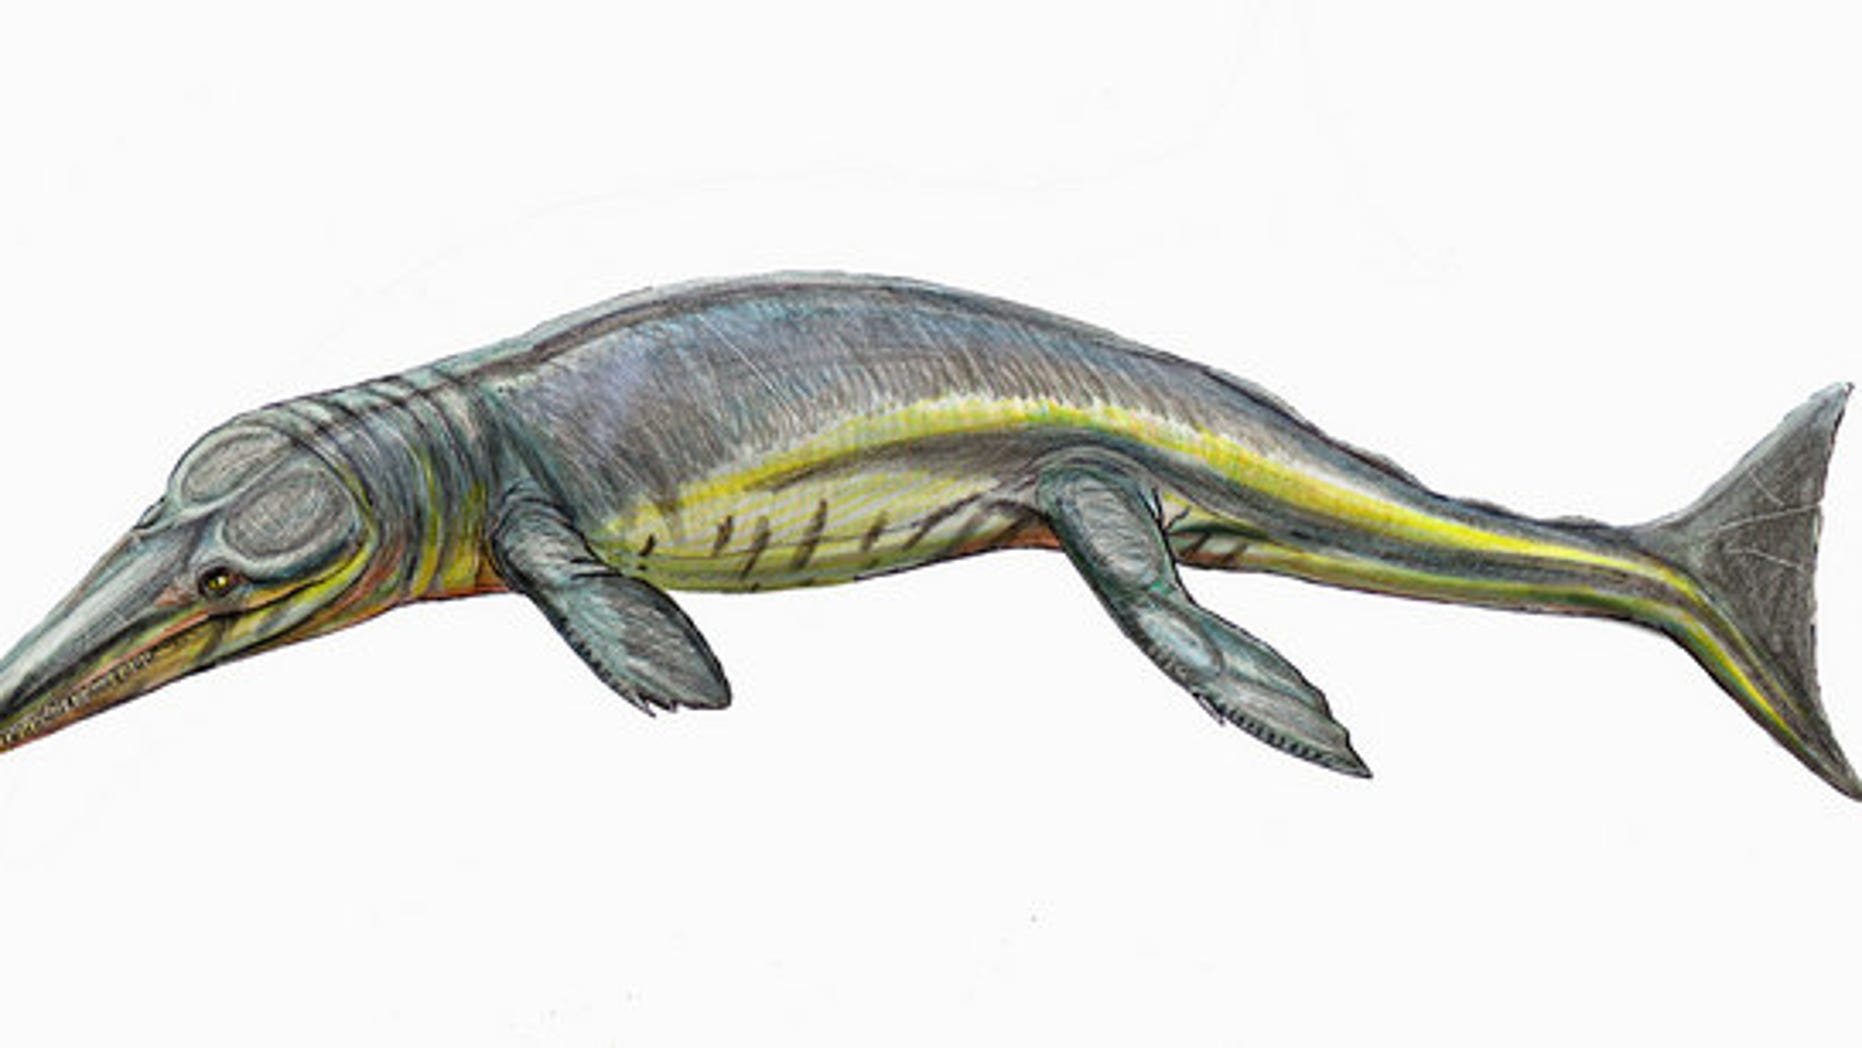 The ancient newfound crocodilian <em>Tyrannoneustes lythrodectikos</em> (shown here in an artist's rendering) would have devoured giant prey some 165 million years ago.